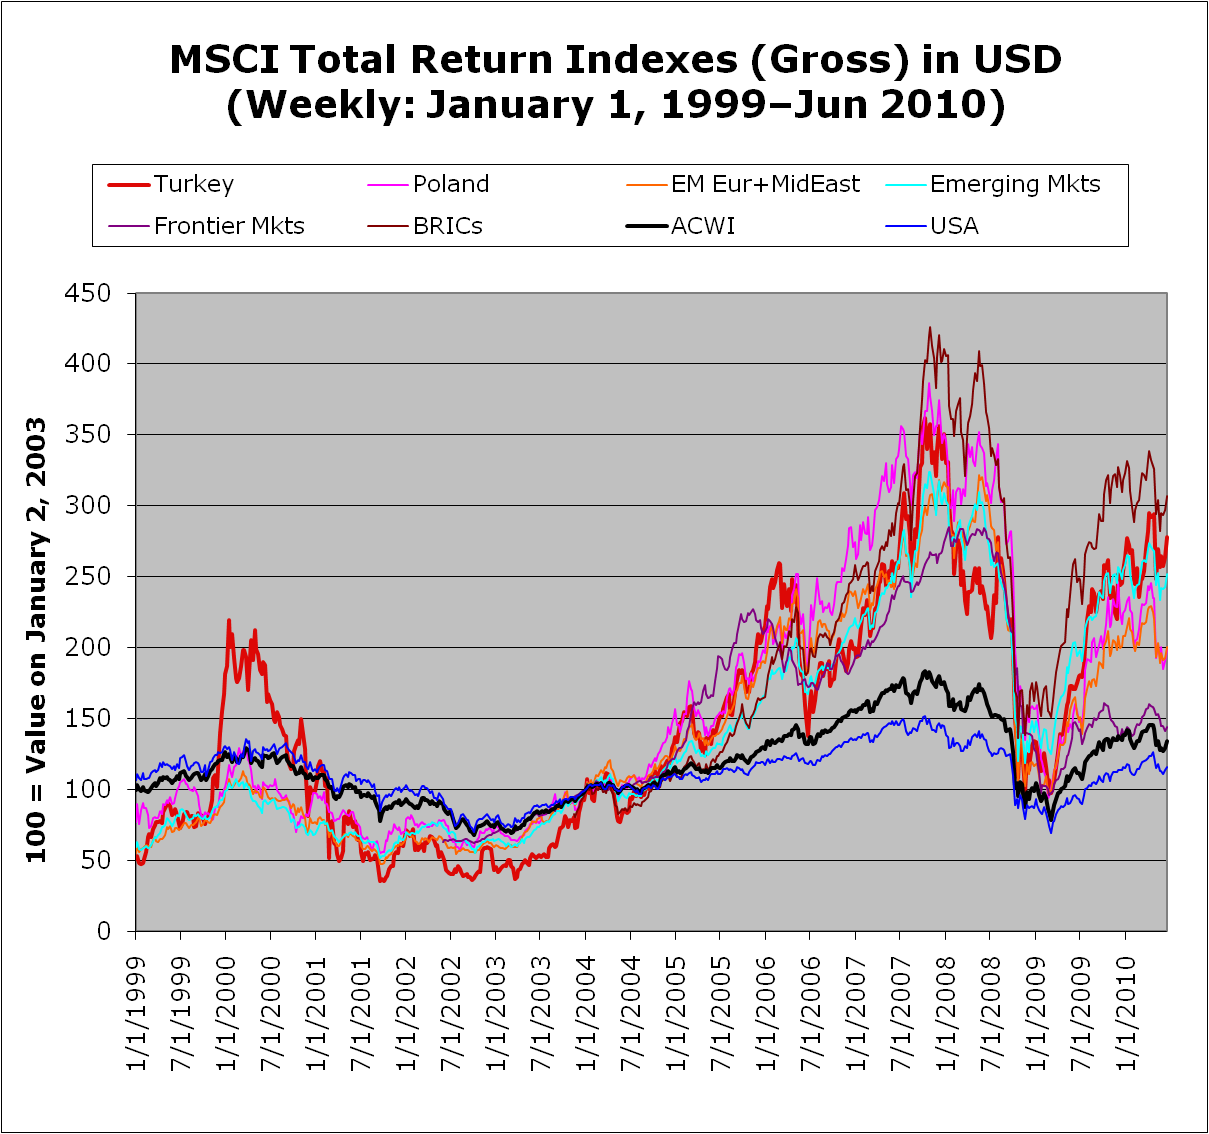 MSCI Total REturn Indexes (Gross in USD)